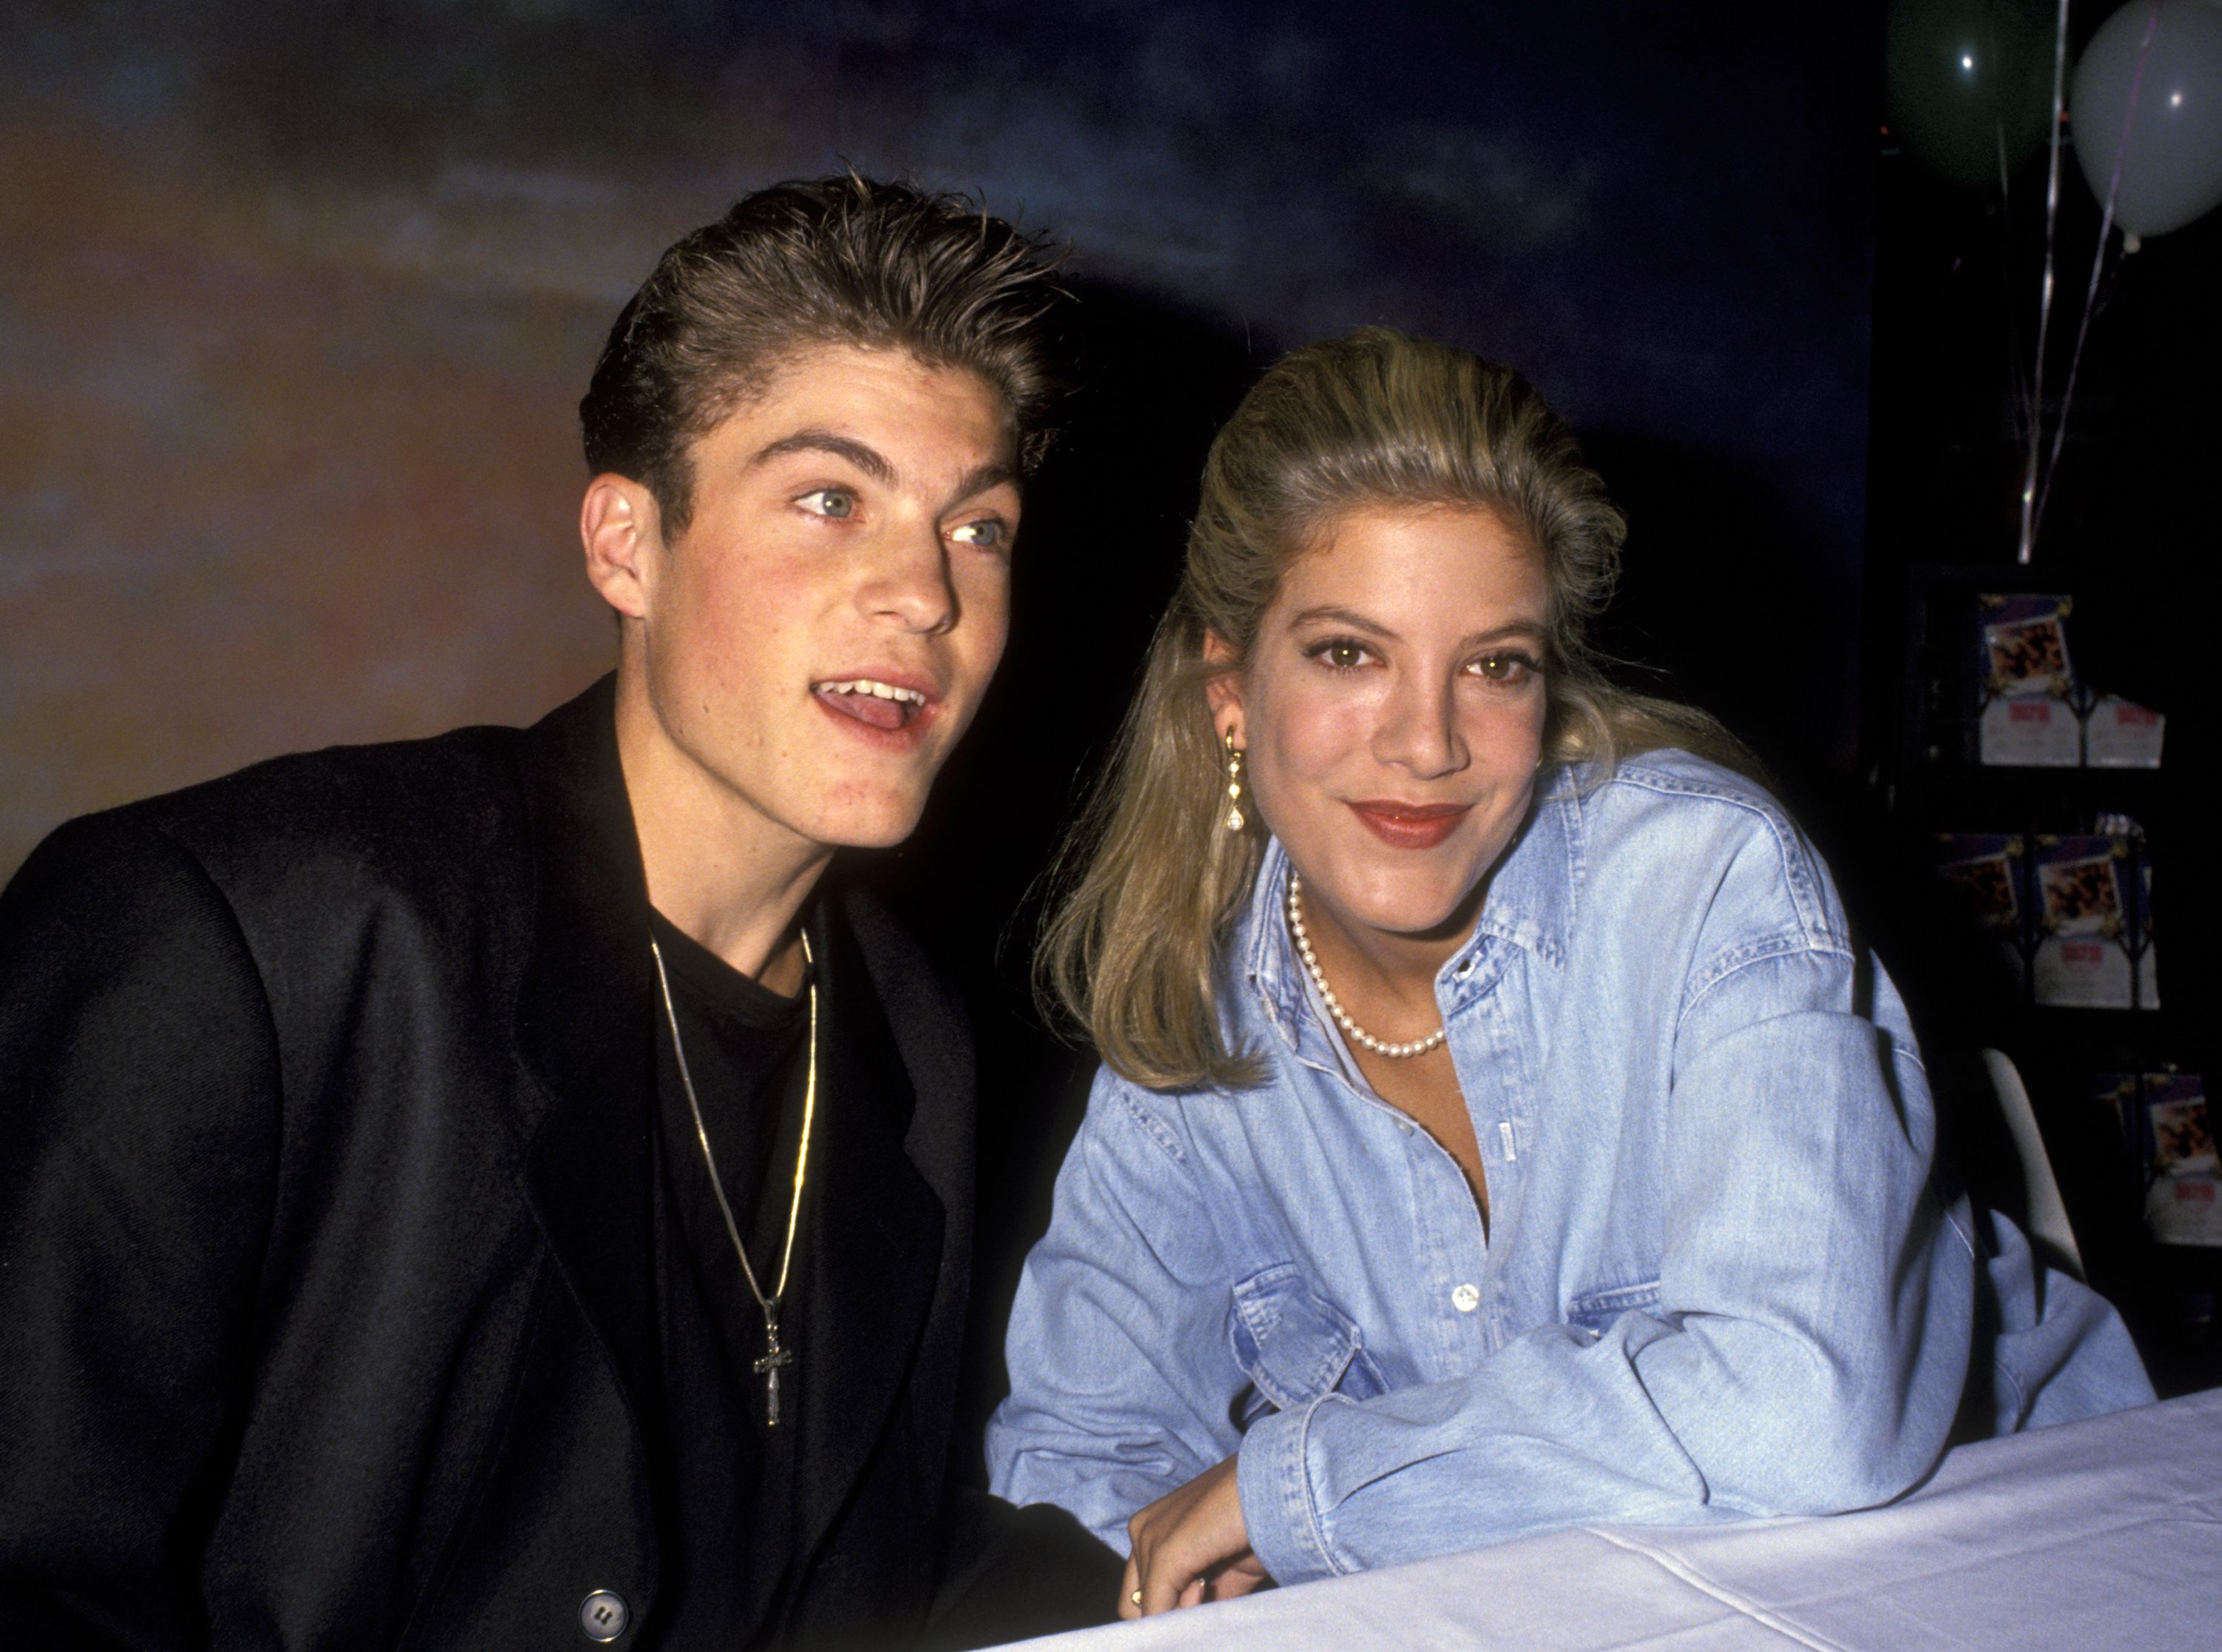 Beverly Hills 90210 cast datingPanther M10 matchmaking